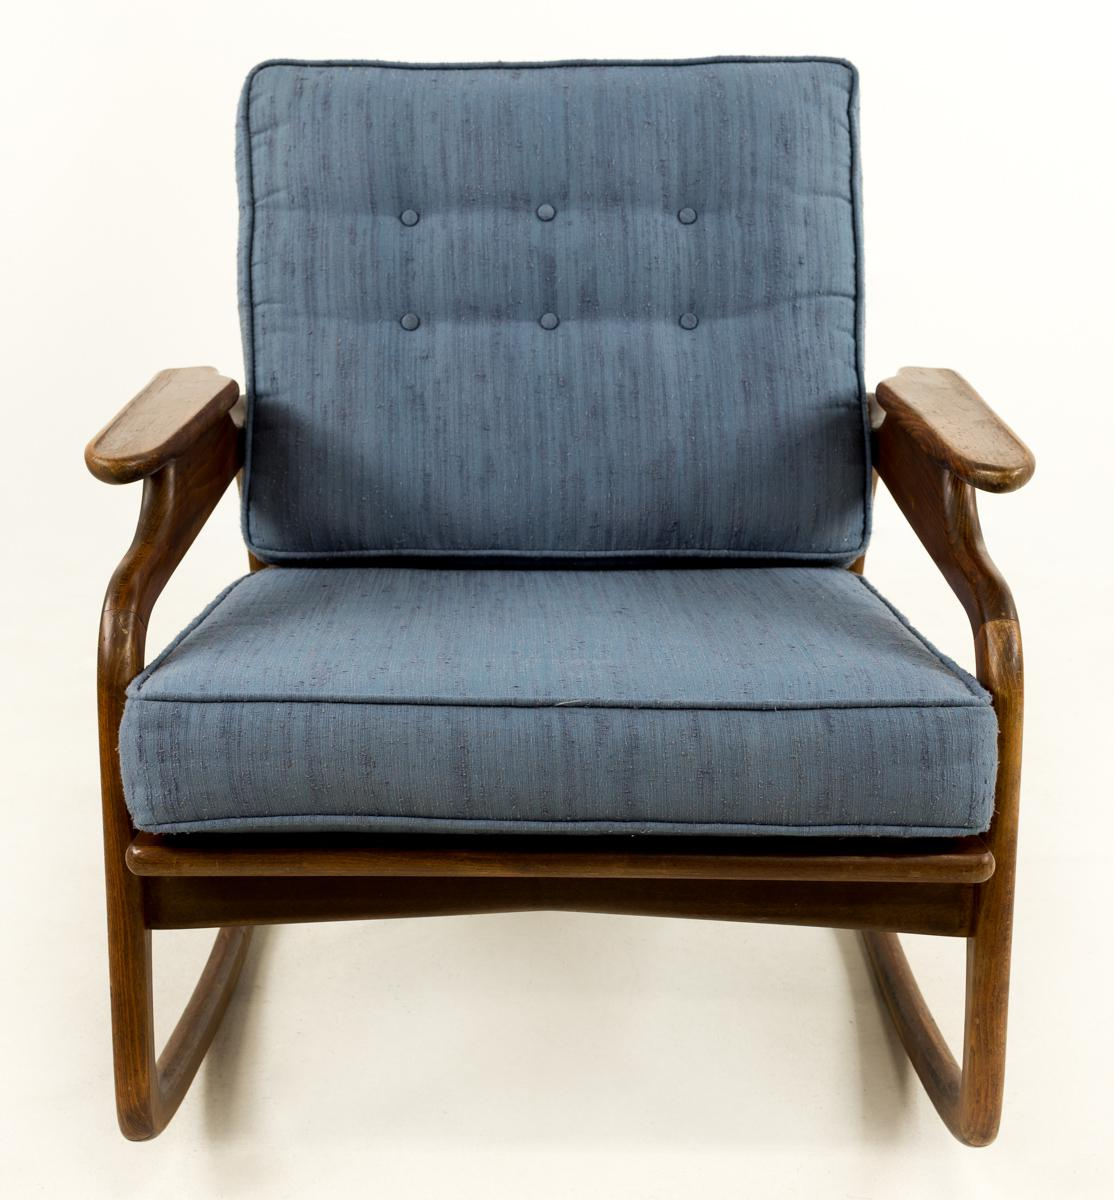 adrian pearsall rocking chair geri clinical recliner chairish mid century modern for sale image 3 of 7